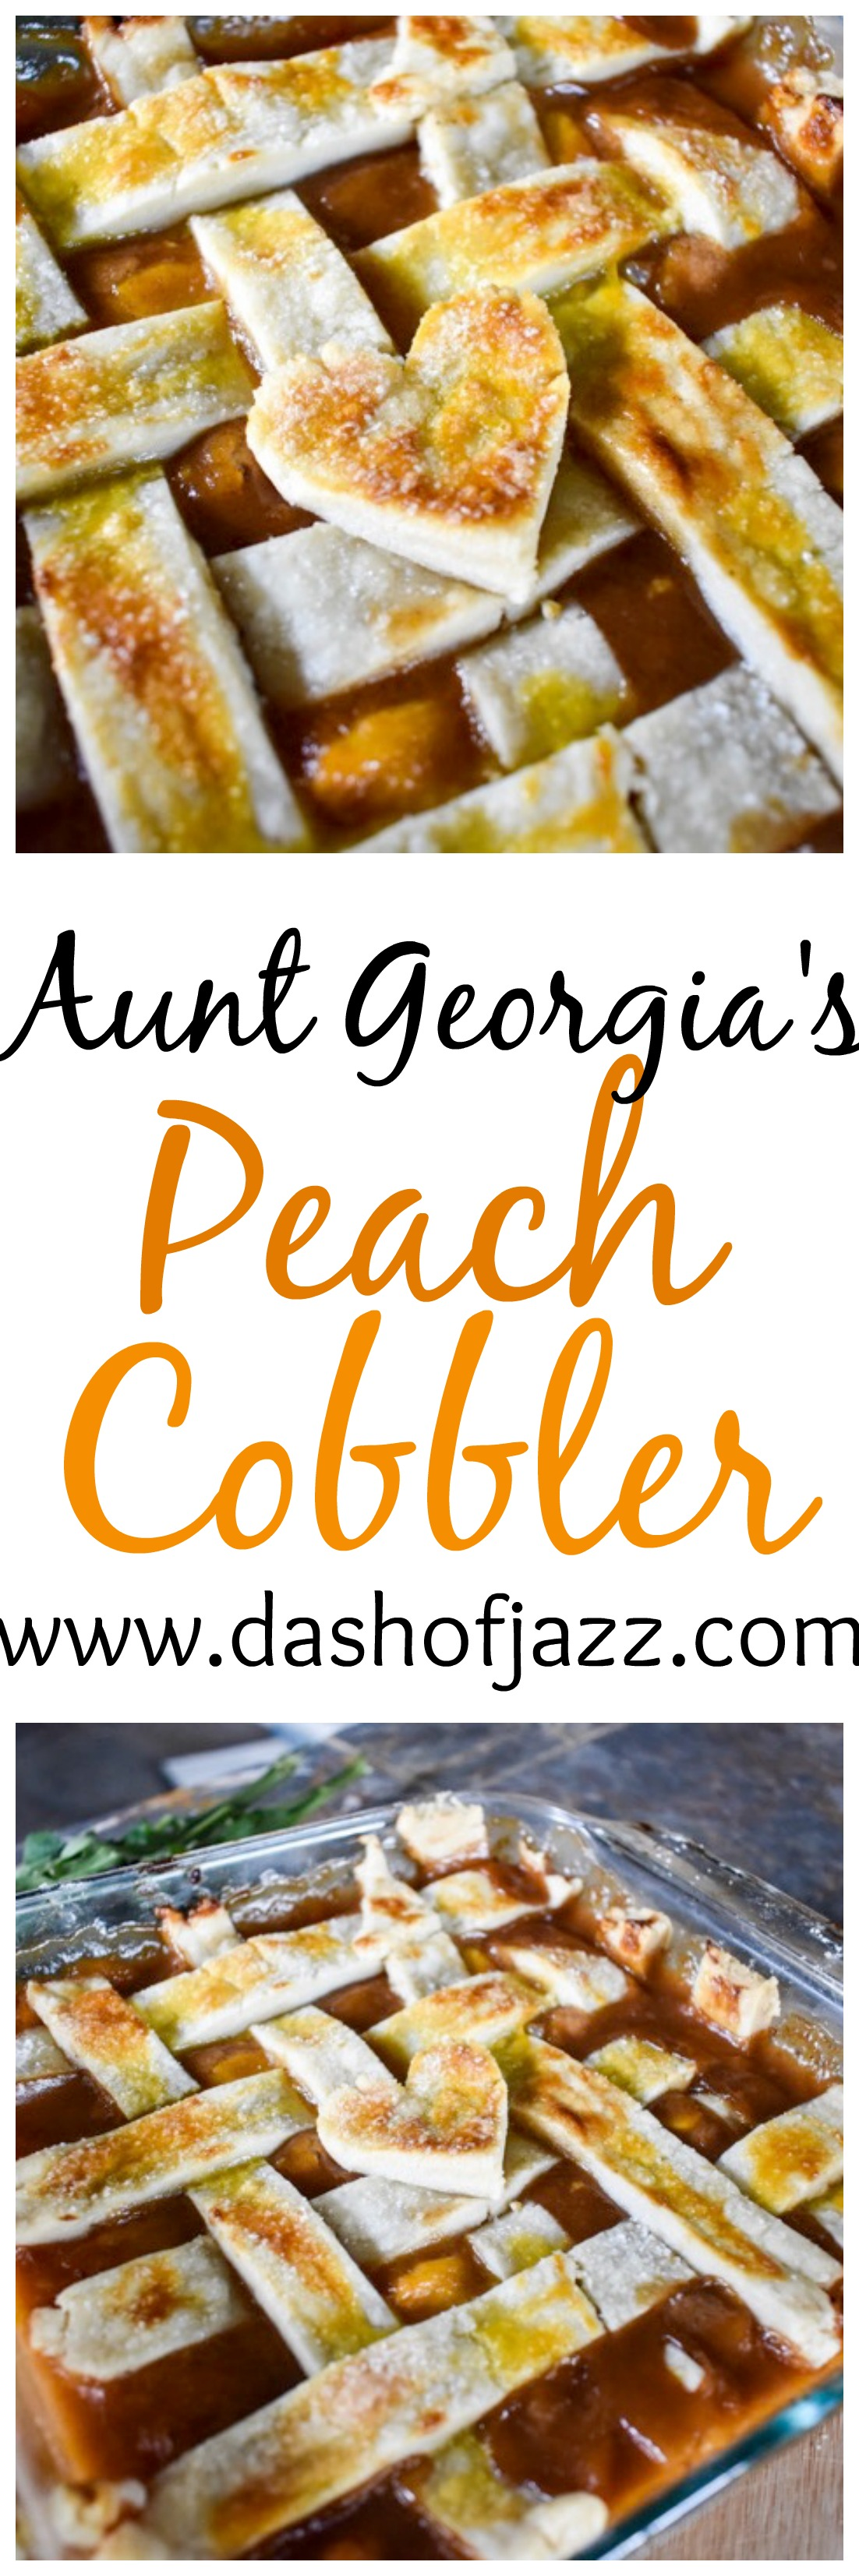 Aunt Georgia's Peach Cobbler is an ooey-gooey Southern classic dessert passed down through four generations of black girl magic. Recipe by Dash of Jazz